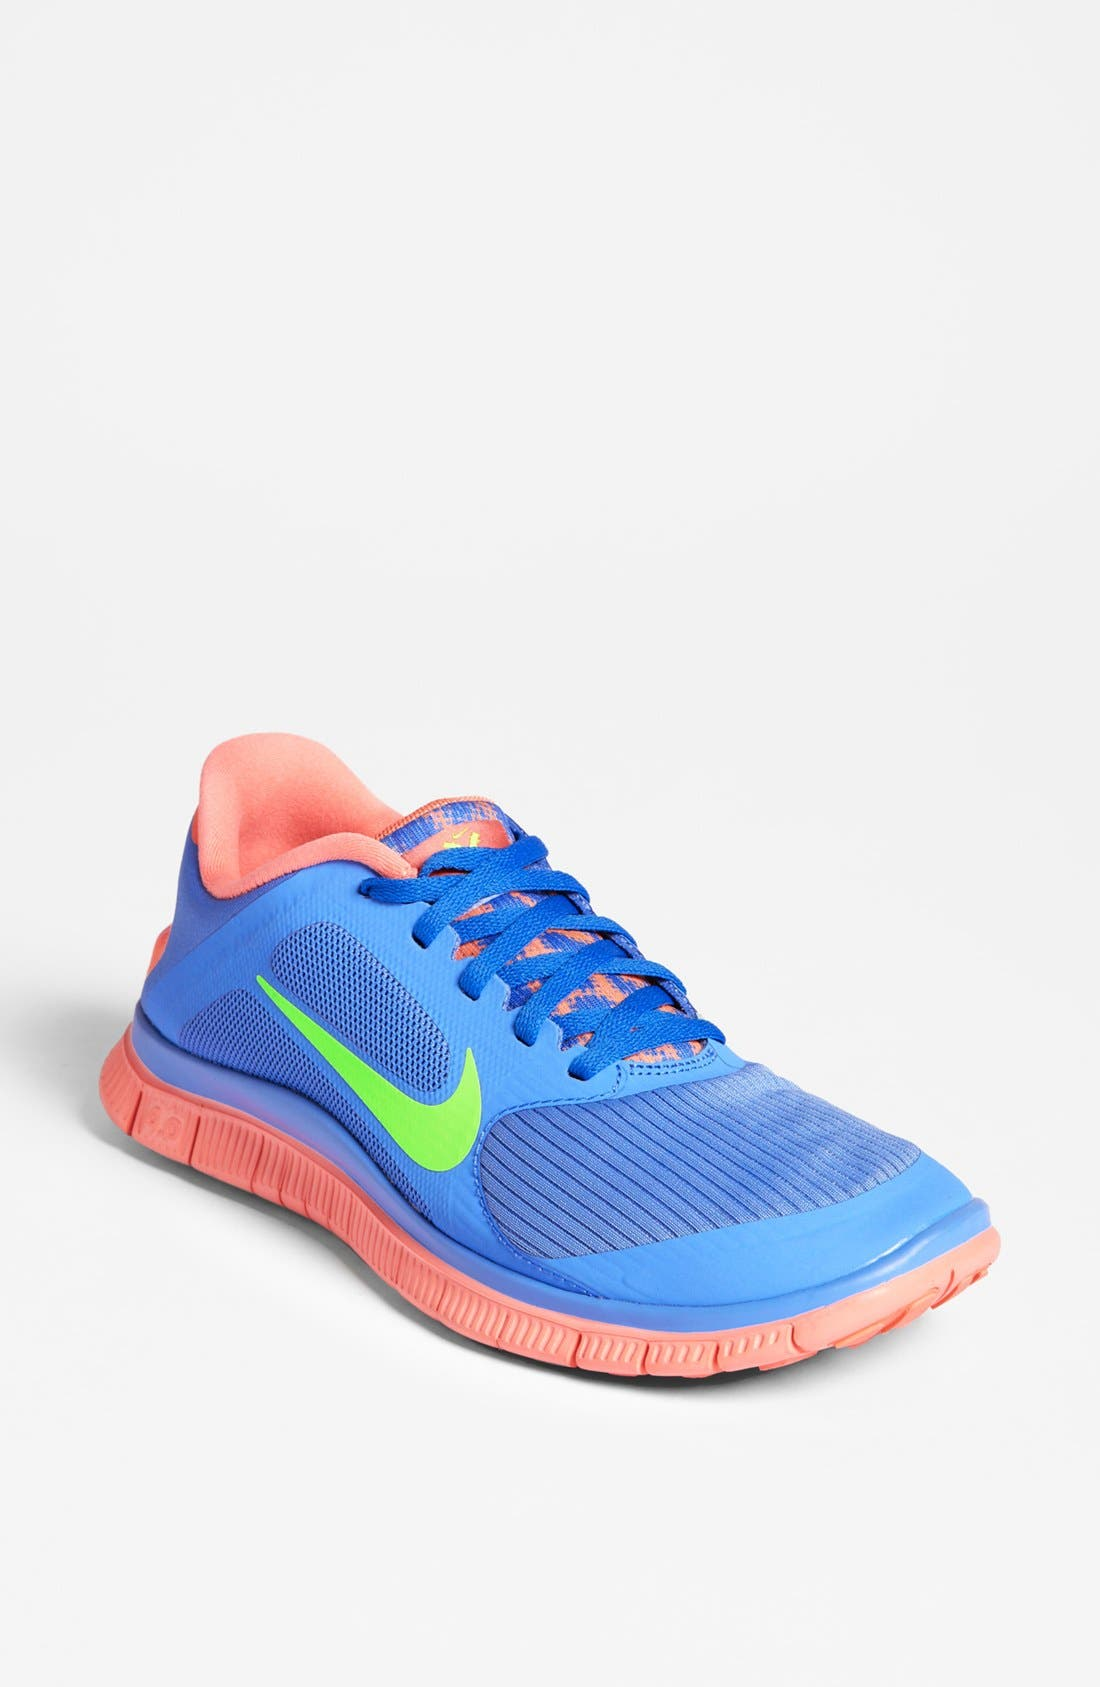 Alternate Image 1 Selected - Nike 'Free 4.0 v3' Running Shoe (Women)